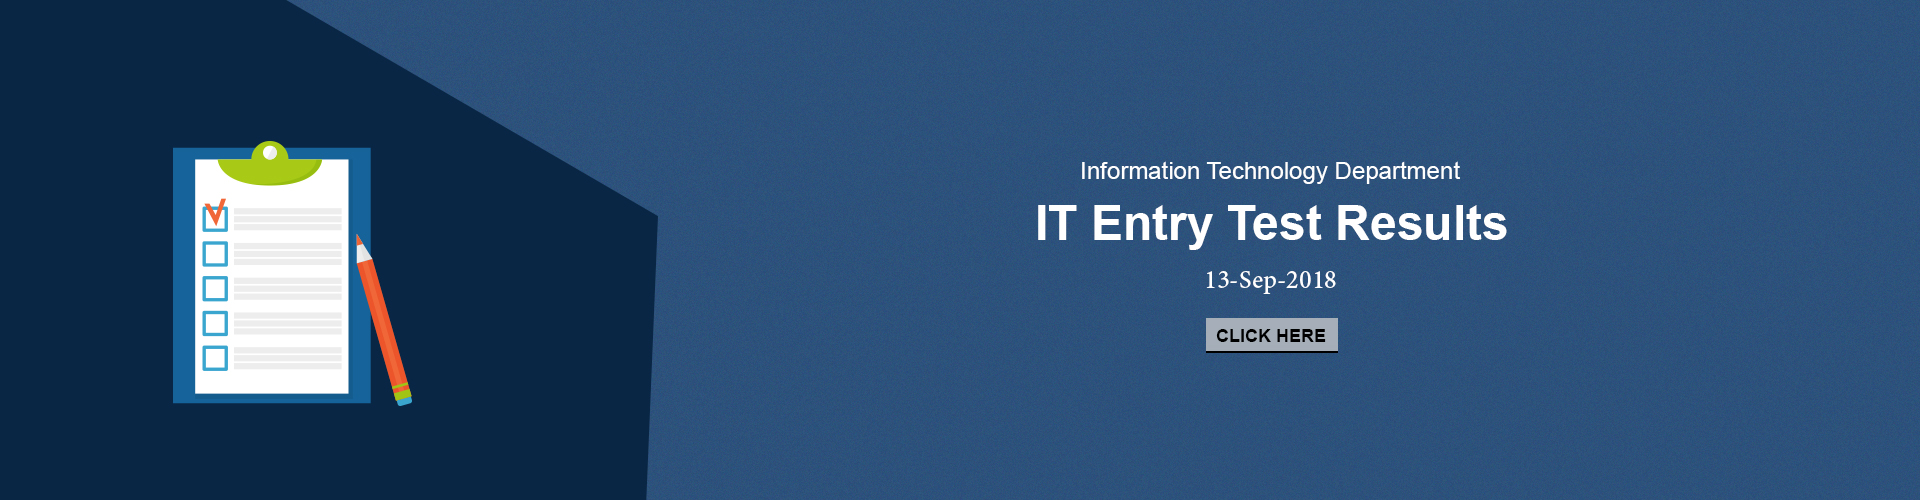 IT Department - Entry Test Results 13 September 2018